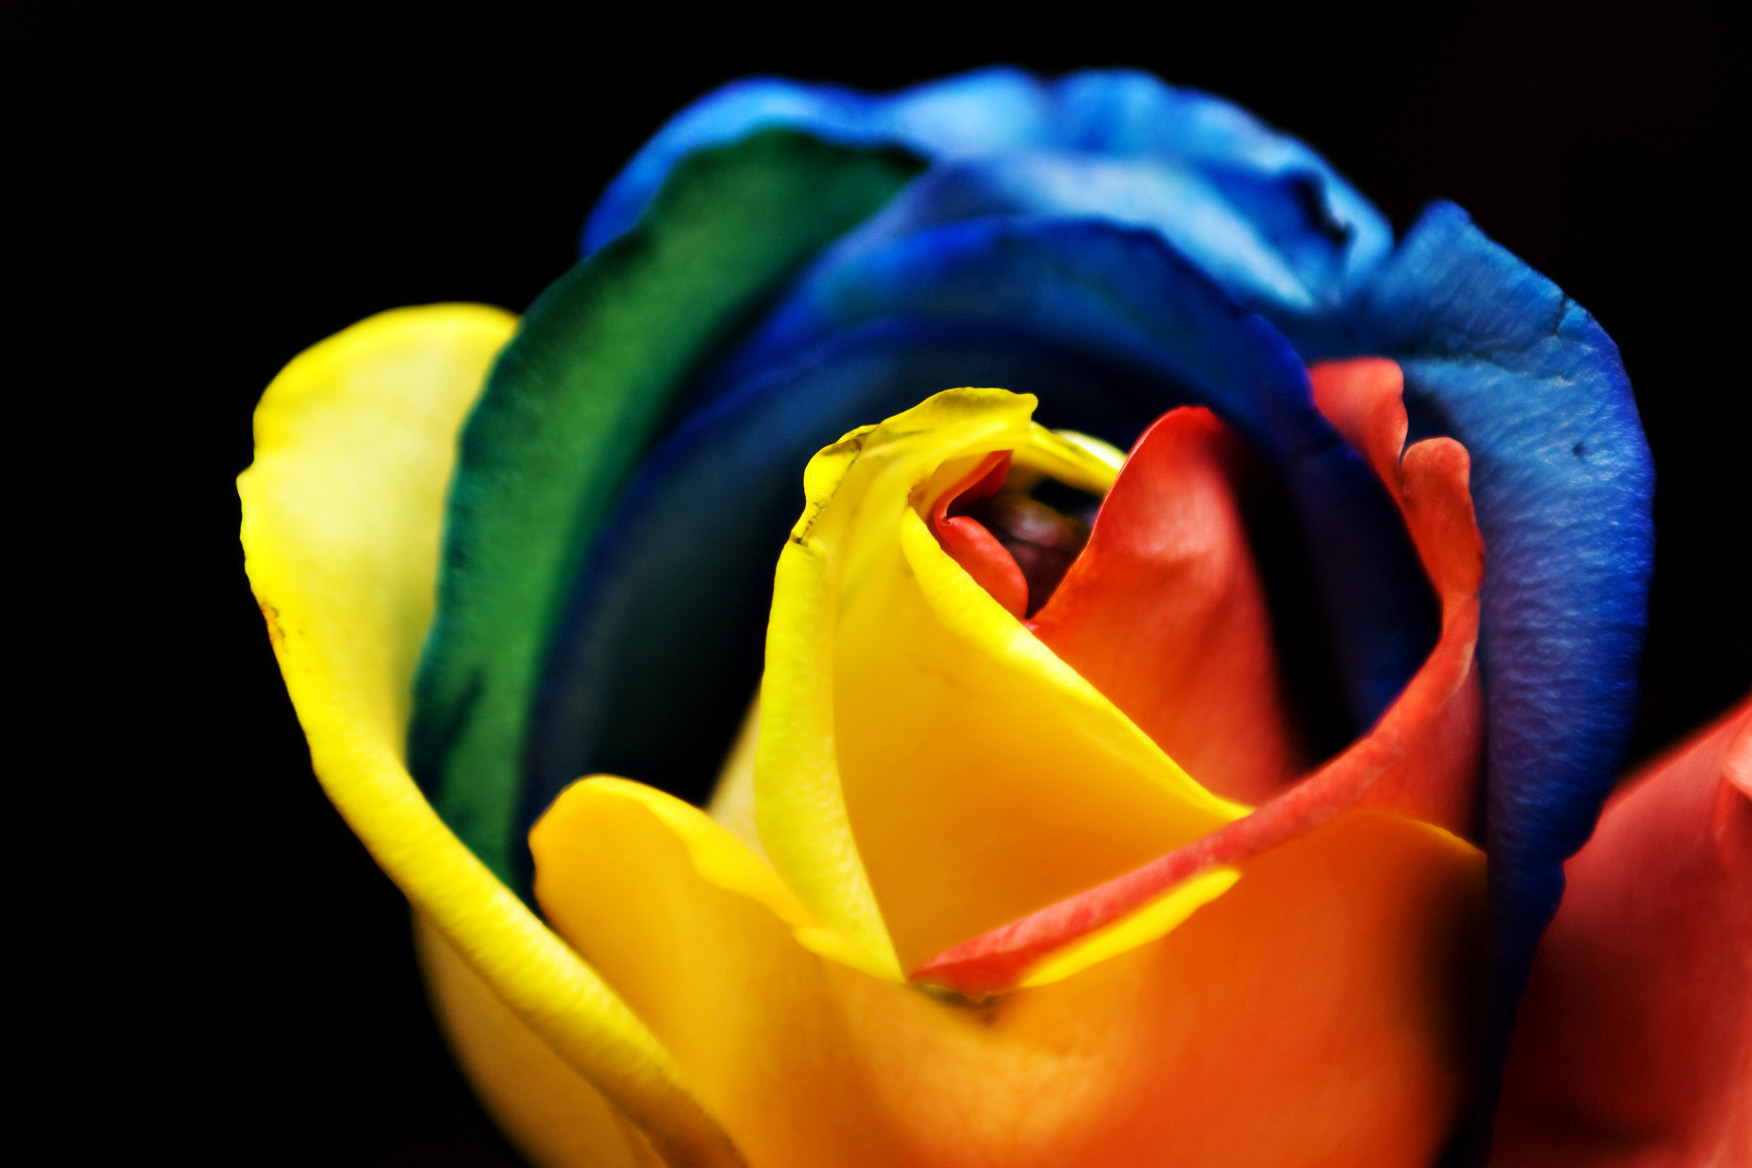 Rainbow rose wikipedia for Dual color roses